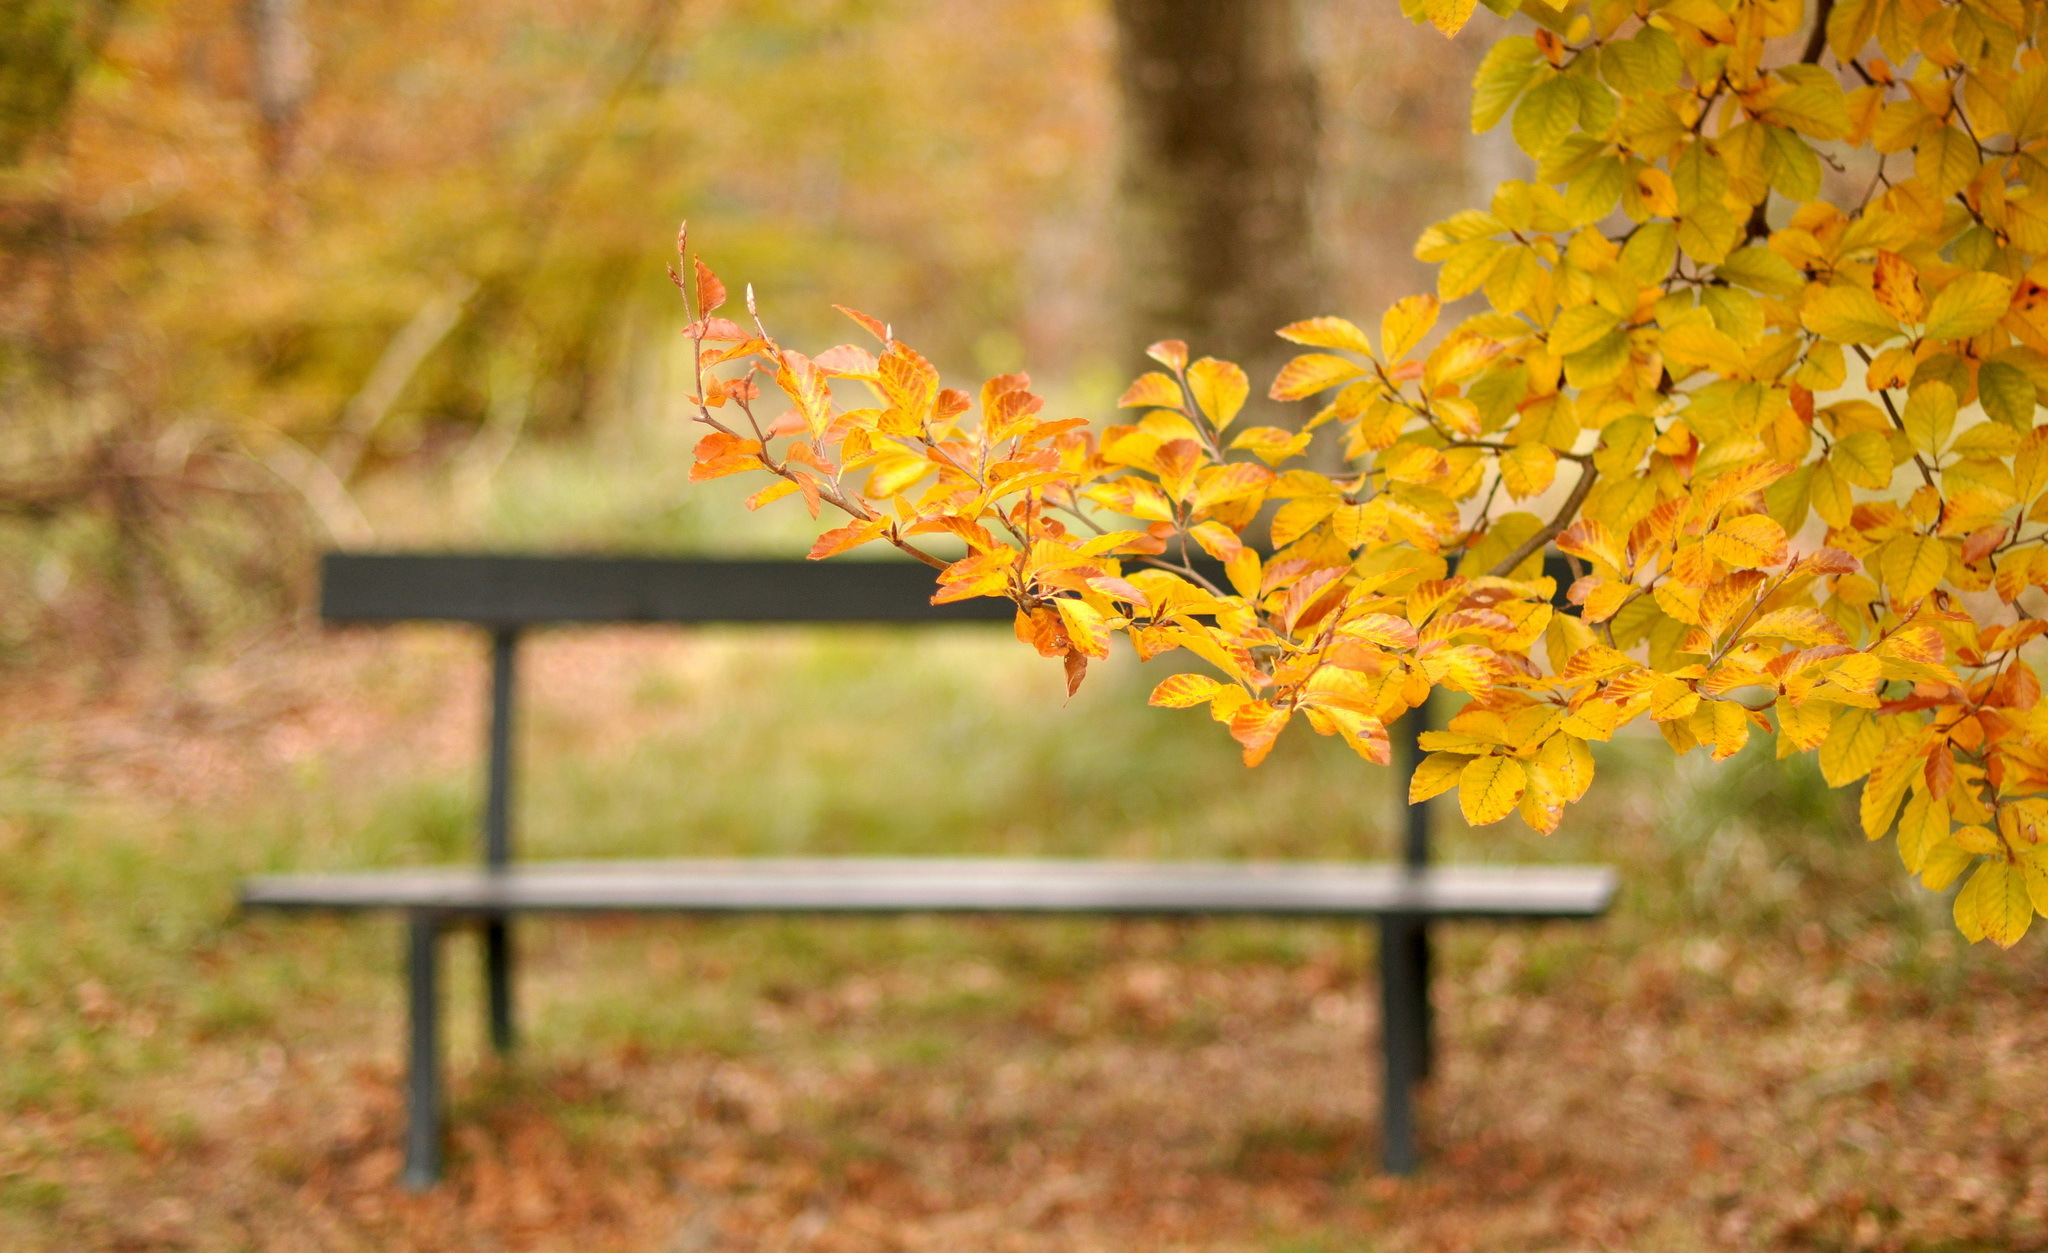 Bench Hd Wallpaper Background Image 2048x1253 Id419951